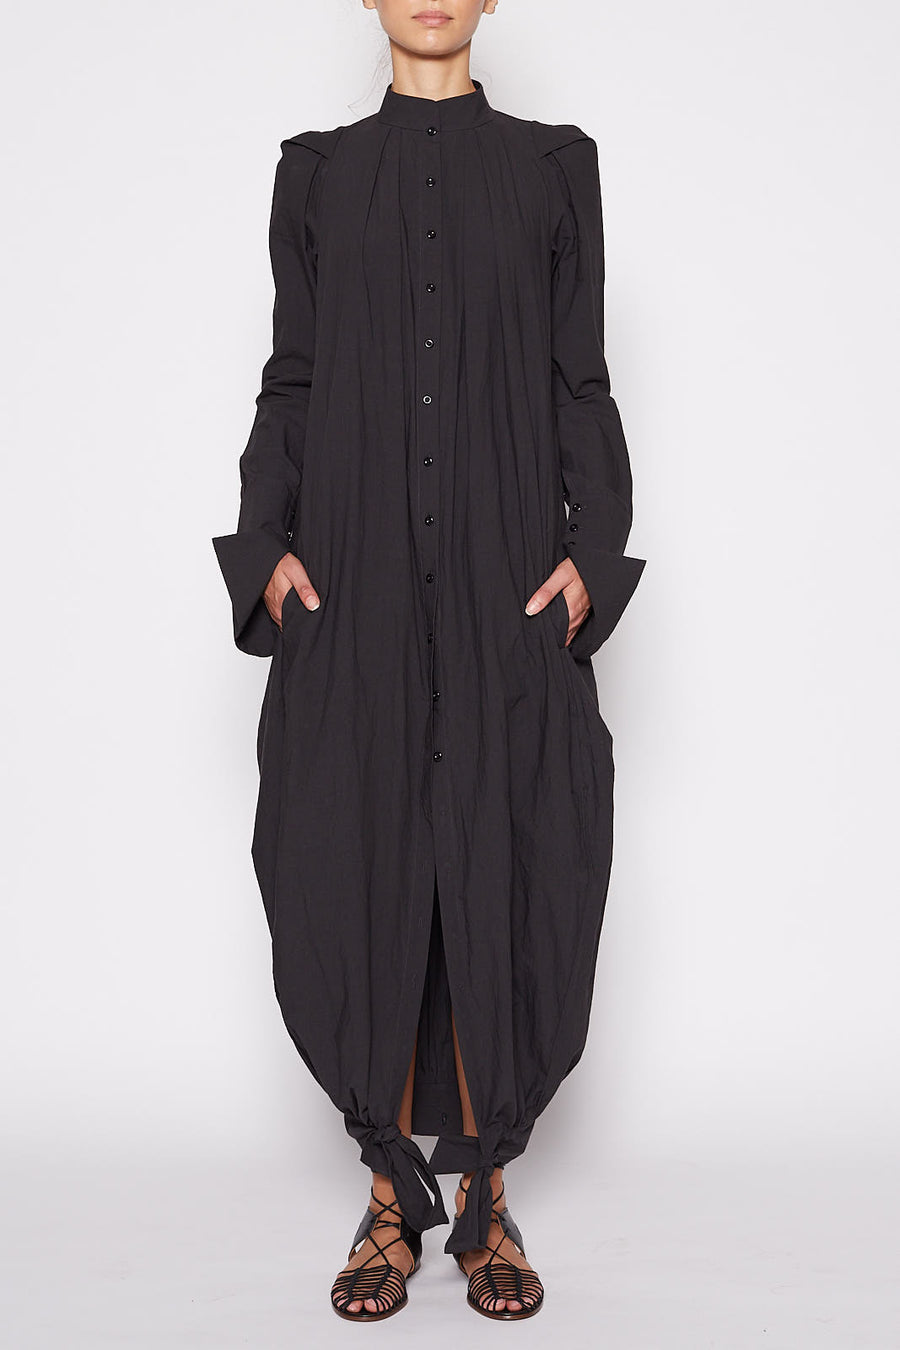 Two Way Shirt Dress - Black